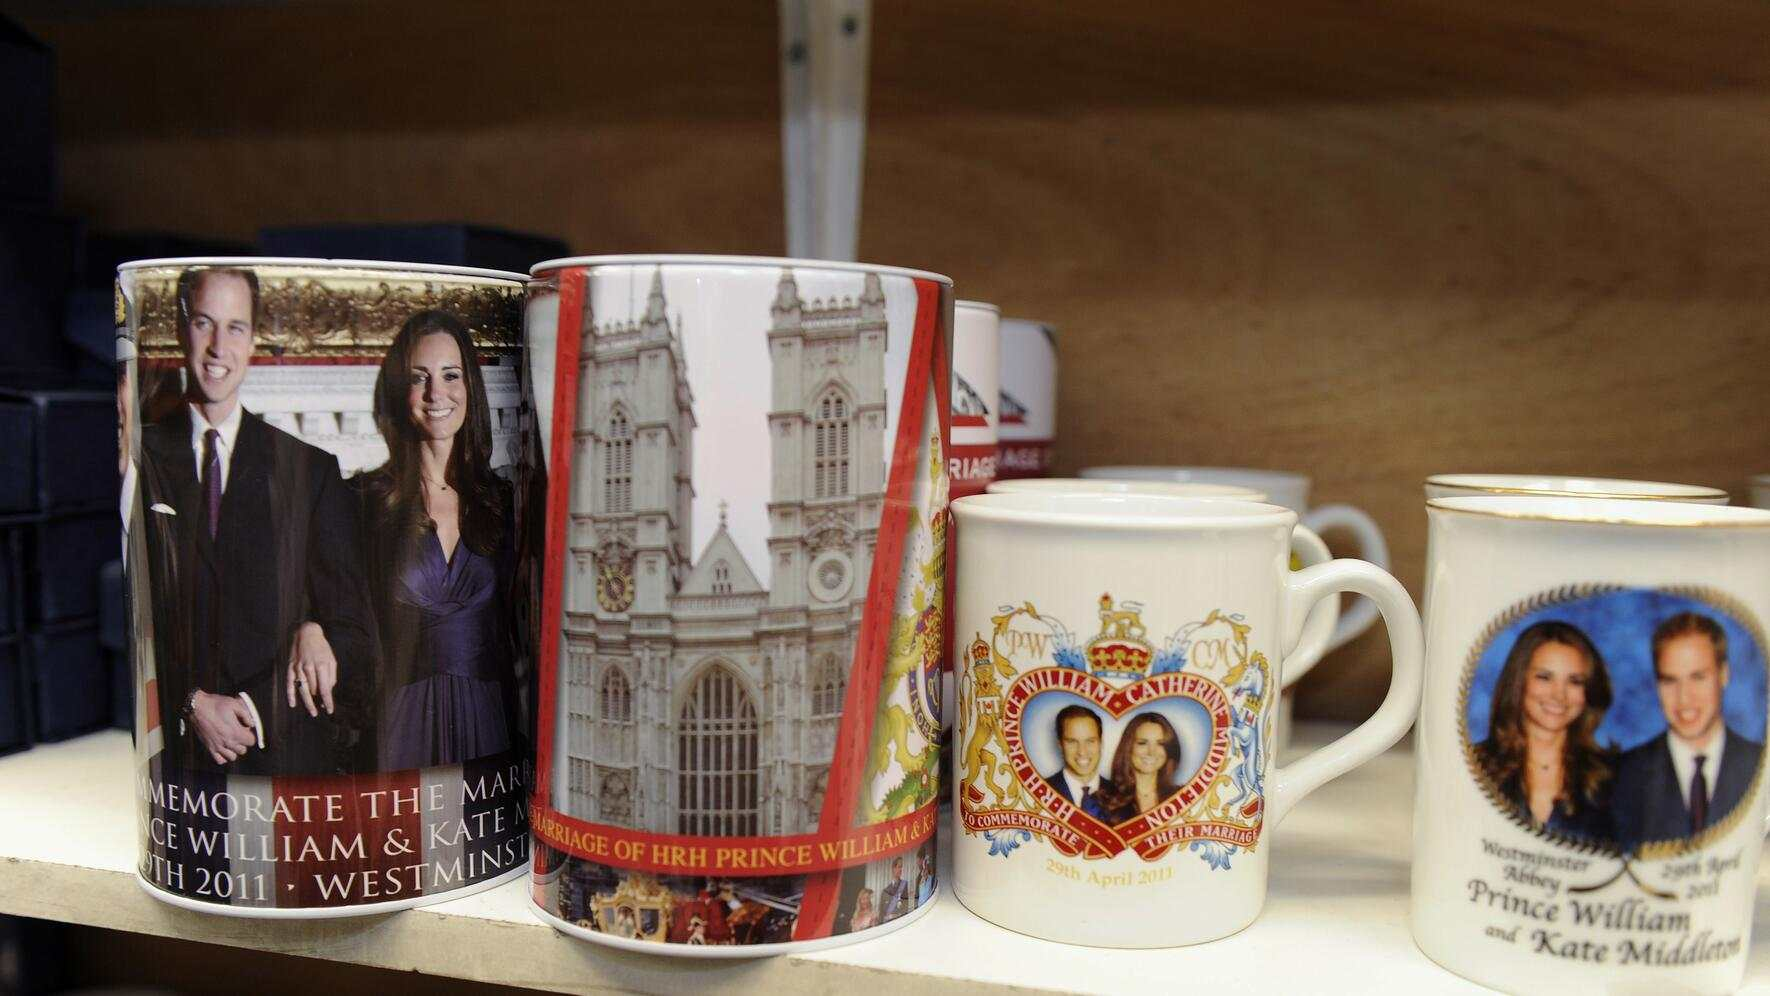 Royal Wedding Will Kate Hochzeit Souvenirs London Aurelia